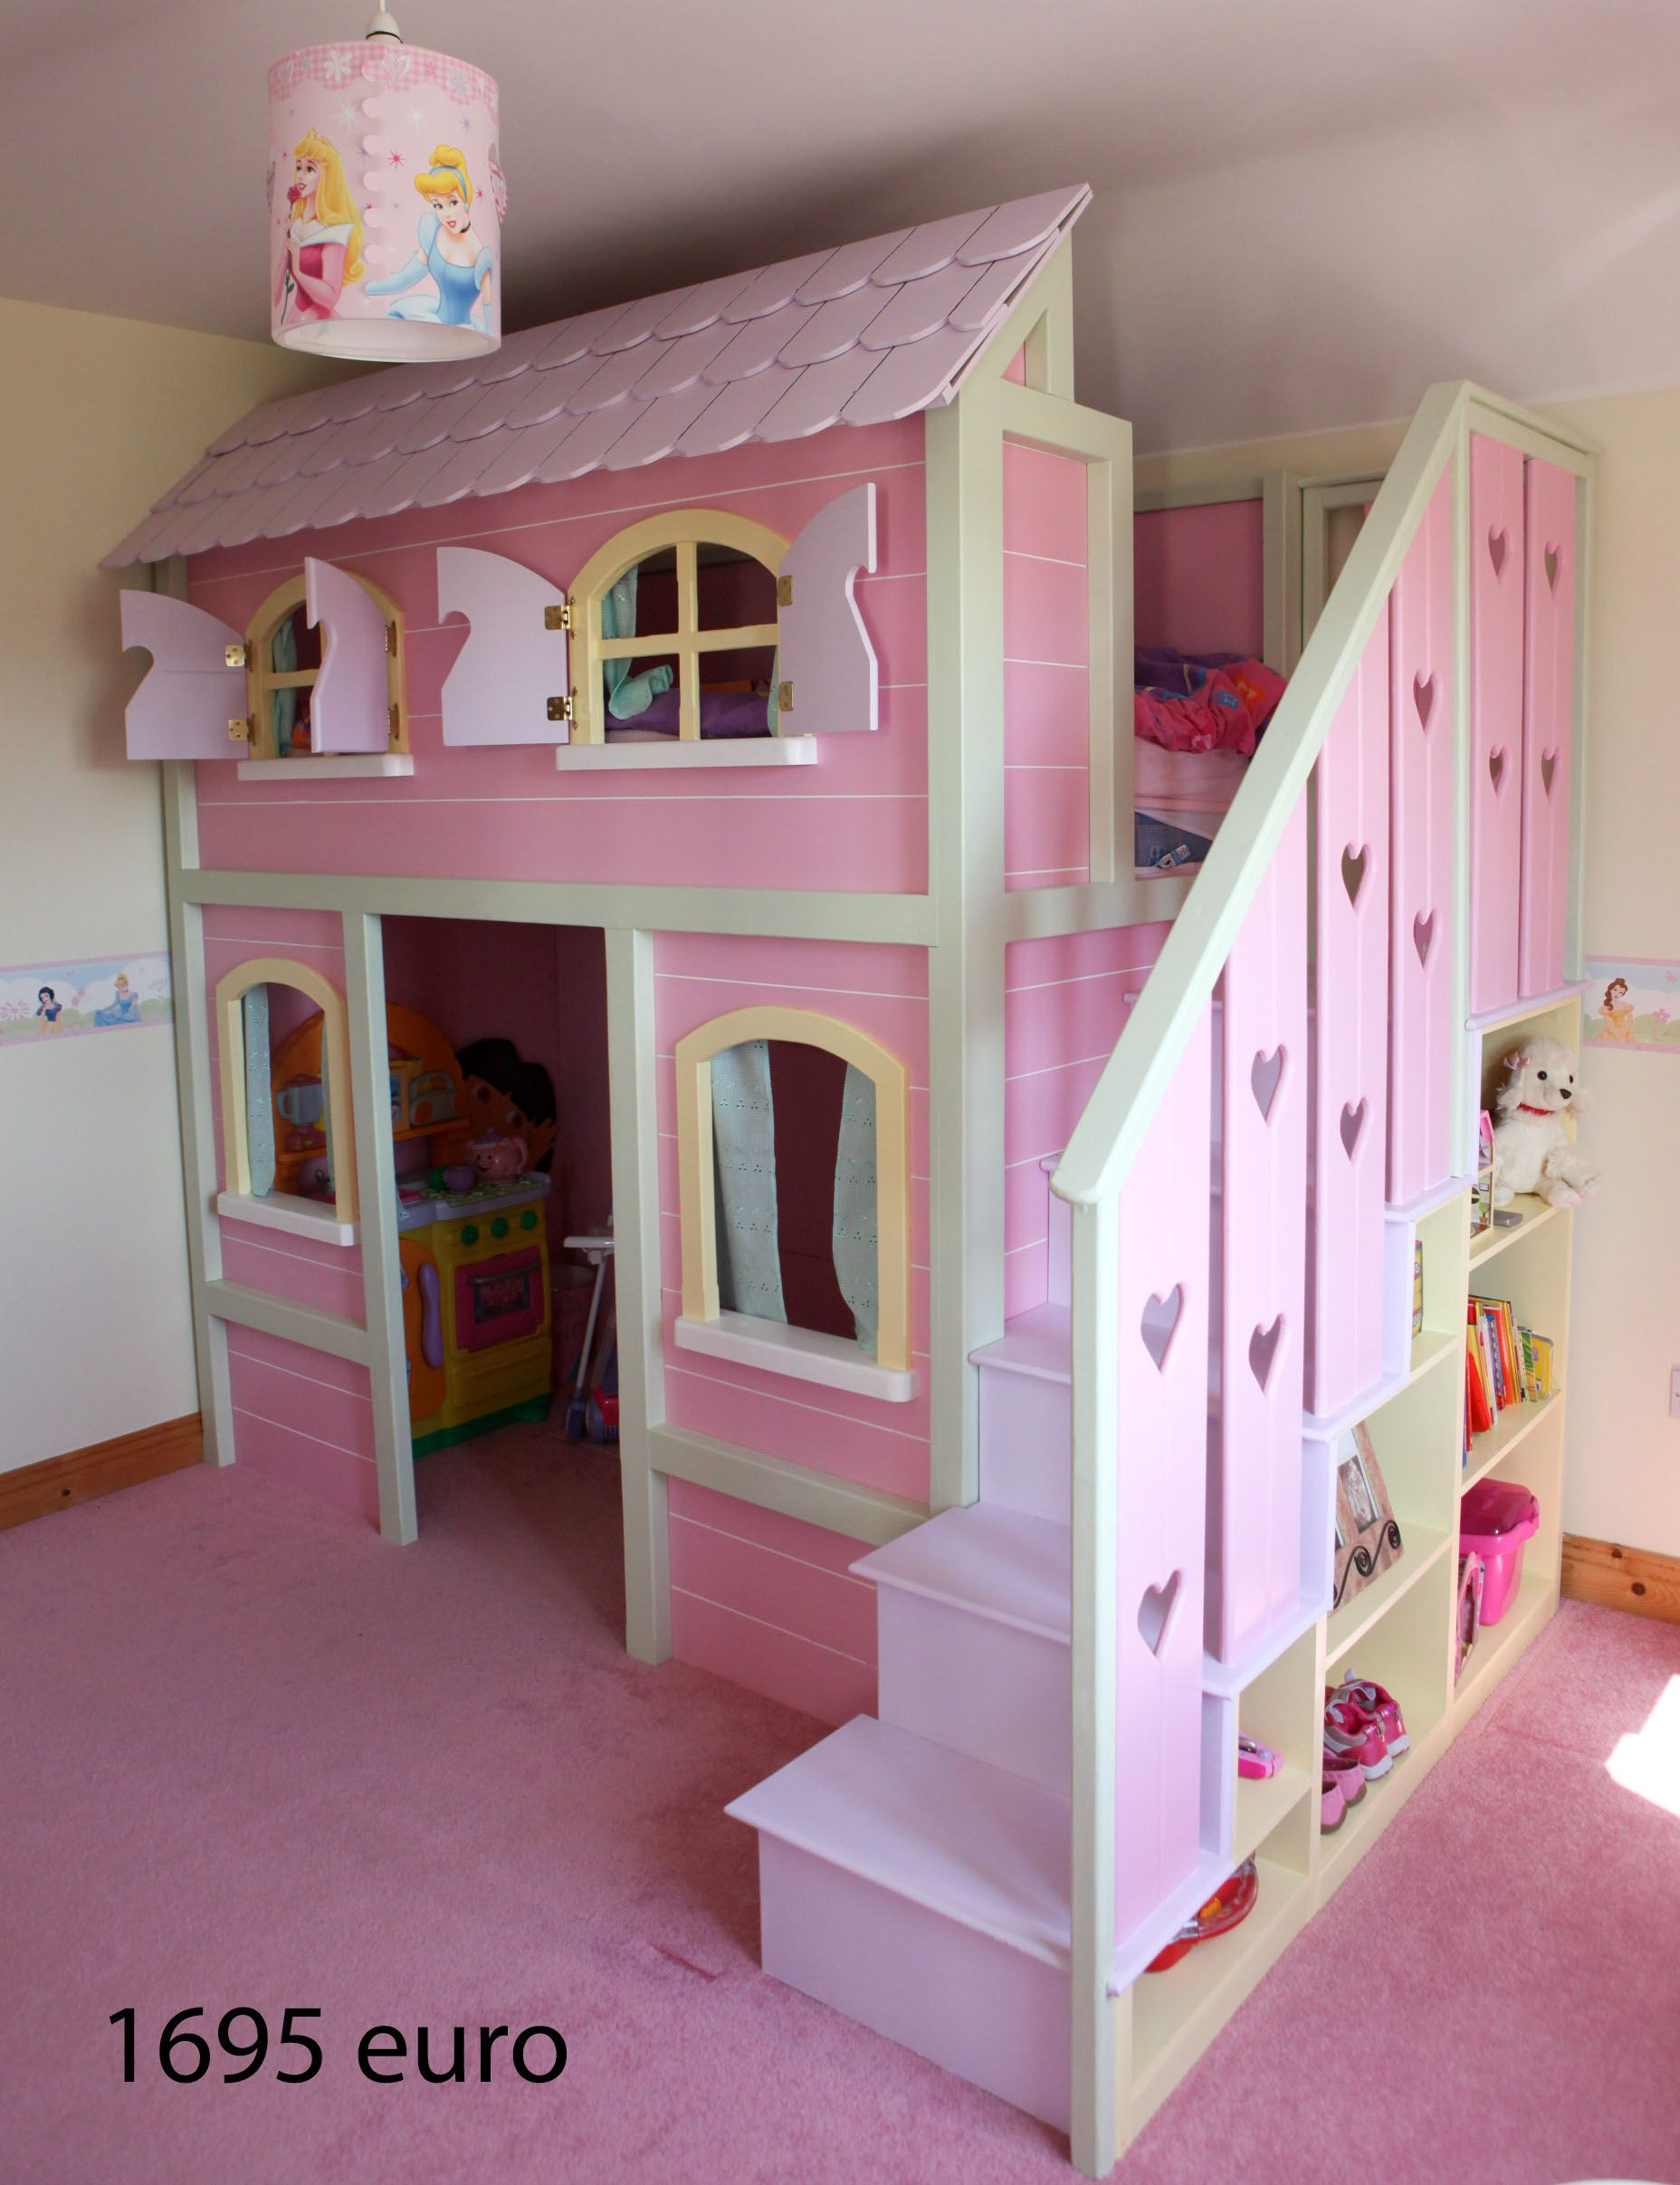 Treehouse loft bed with slide  Childrenus beds with a difference  idéias arquitetônicas